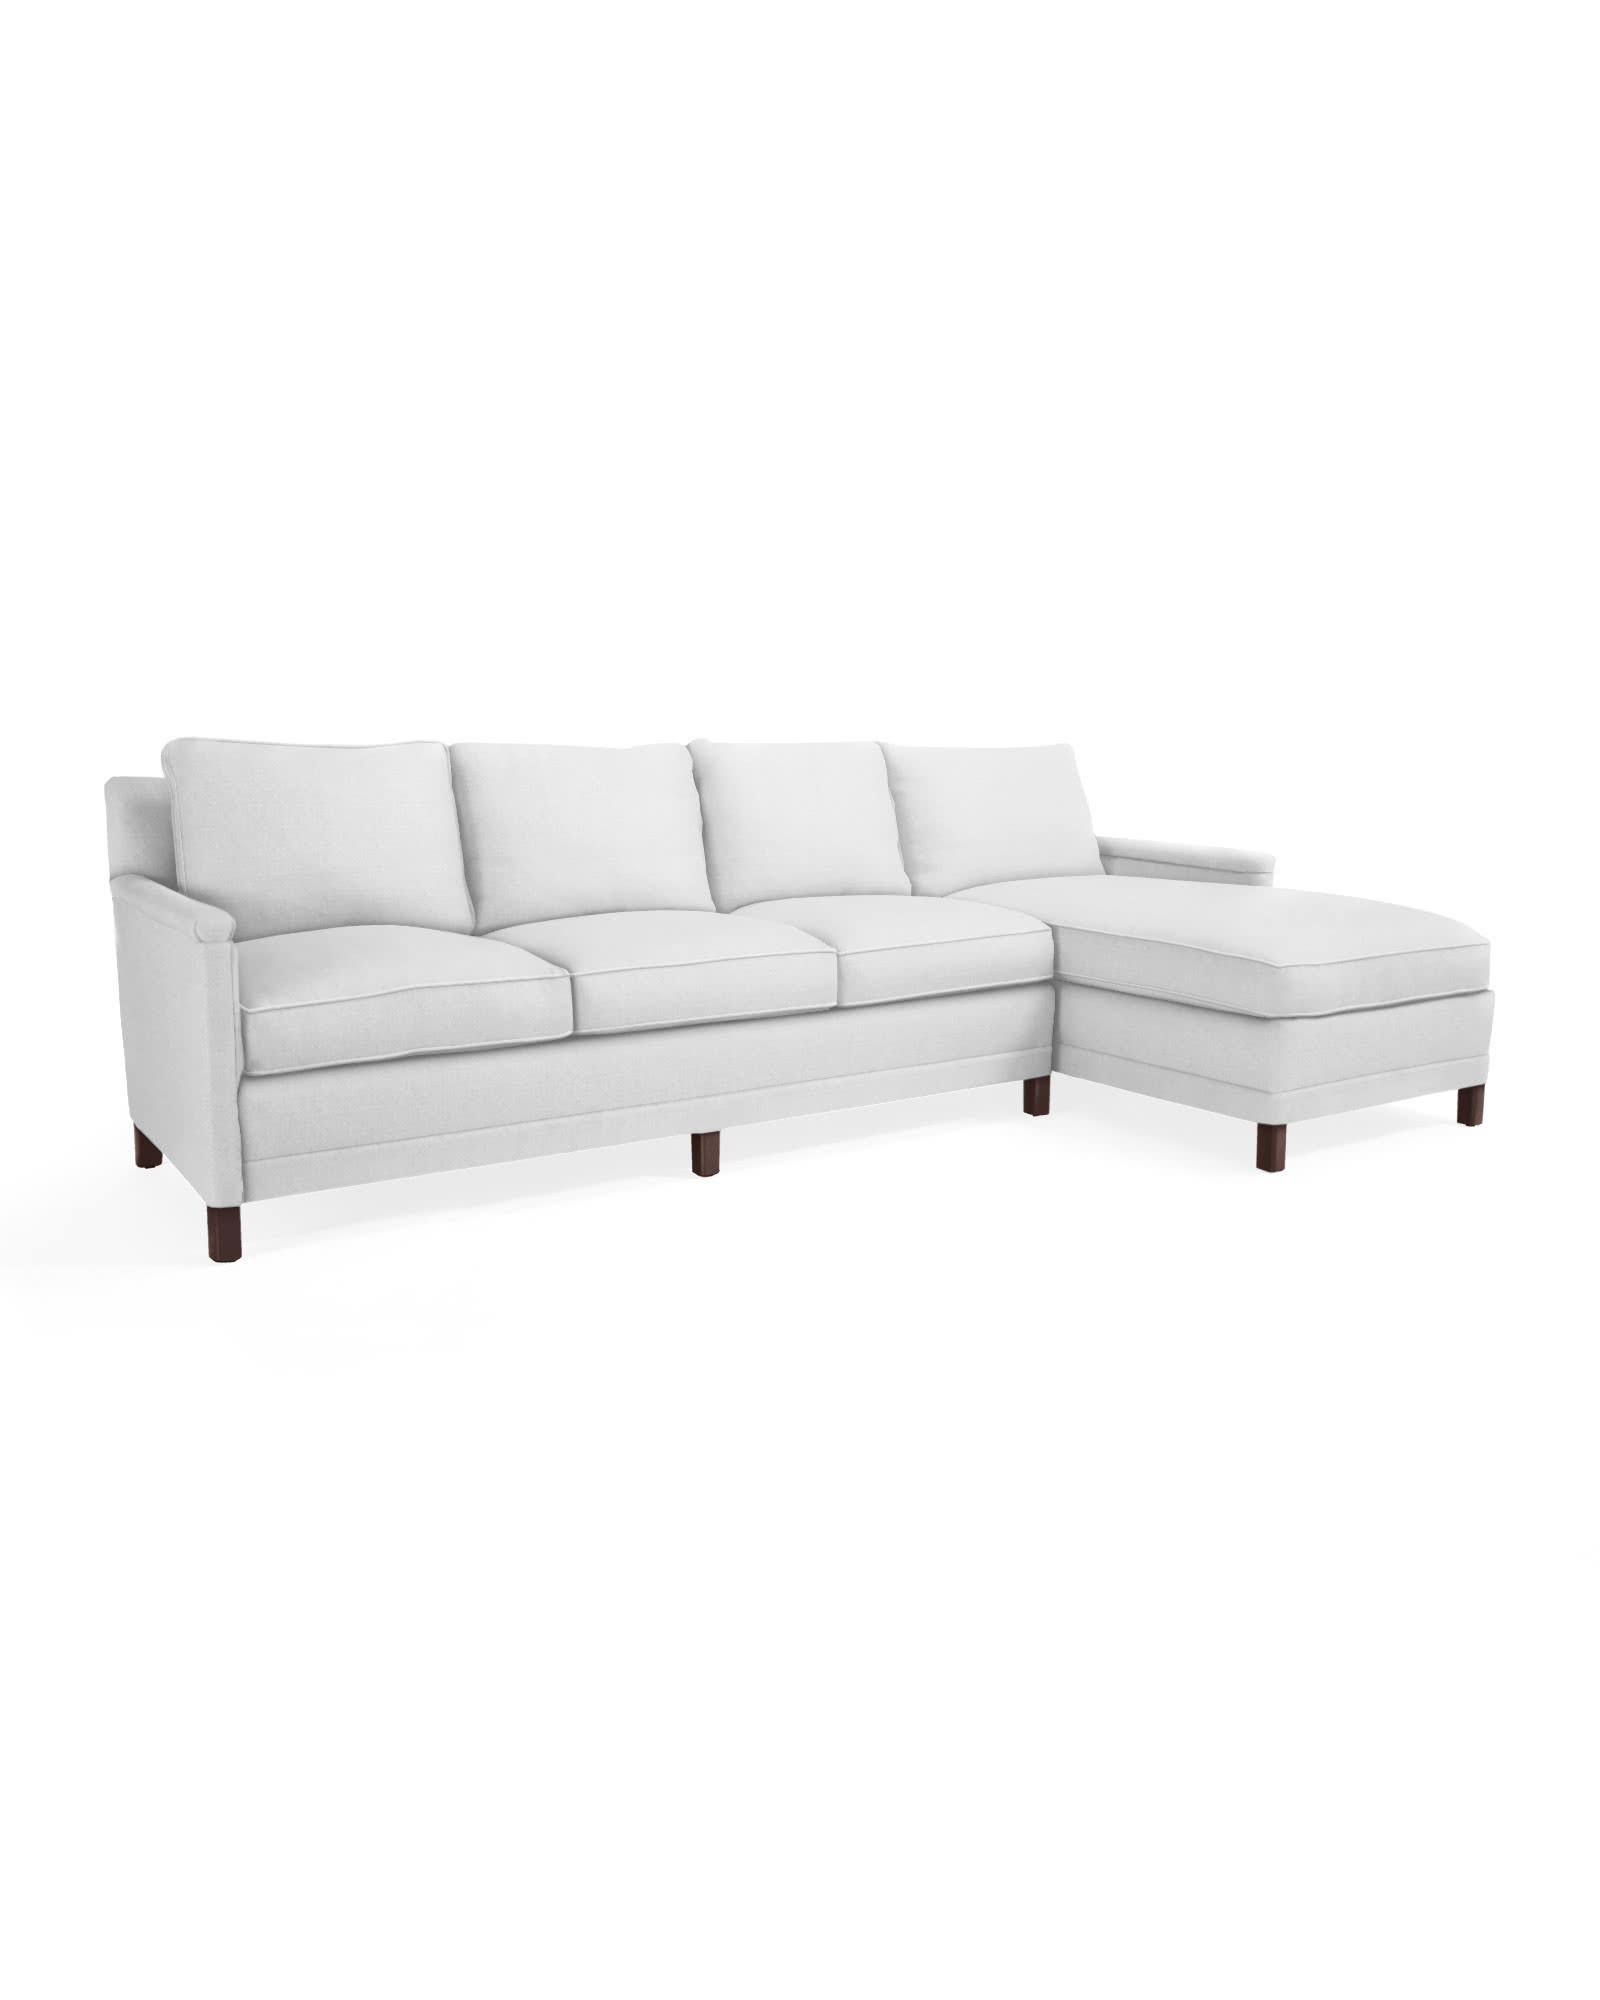 Spruce Street Right-Facing Chaise Sectional